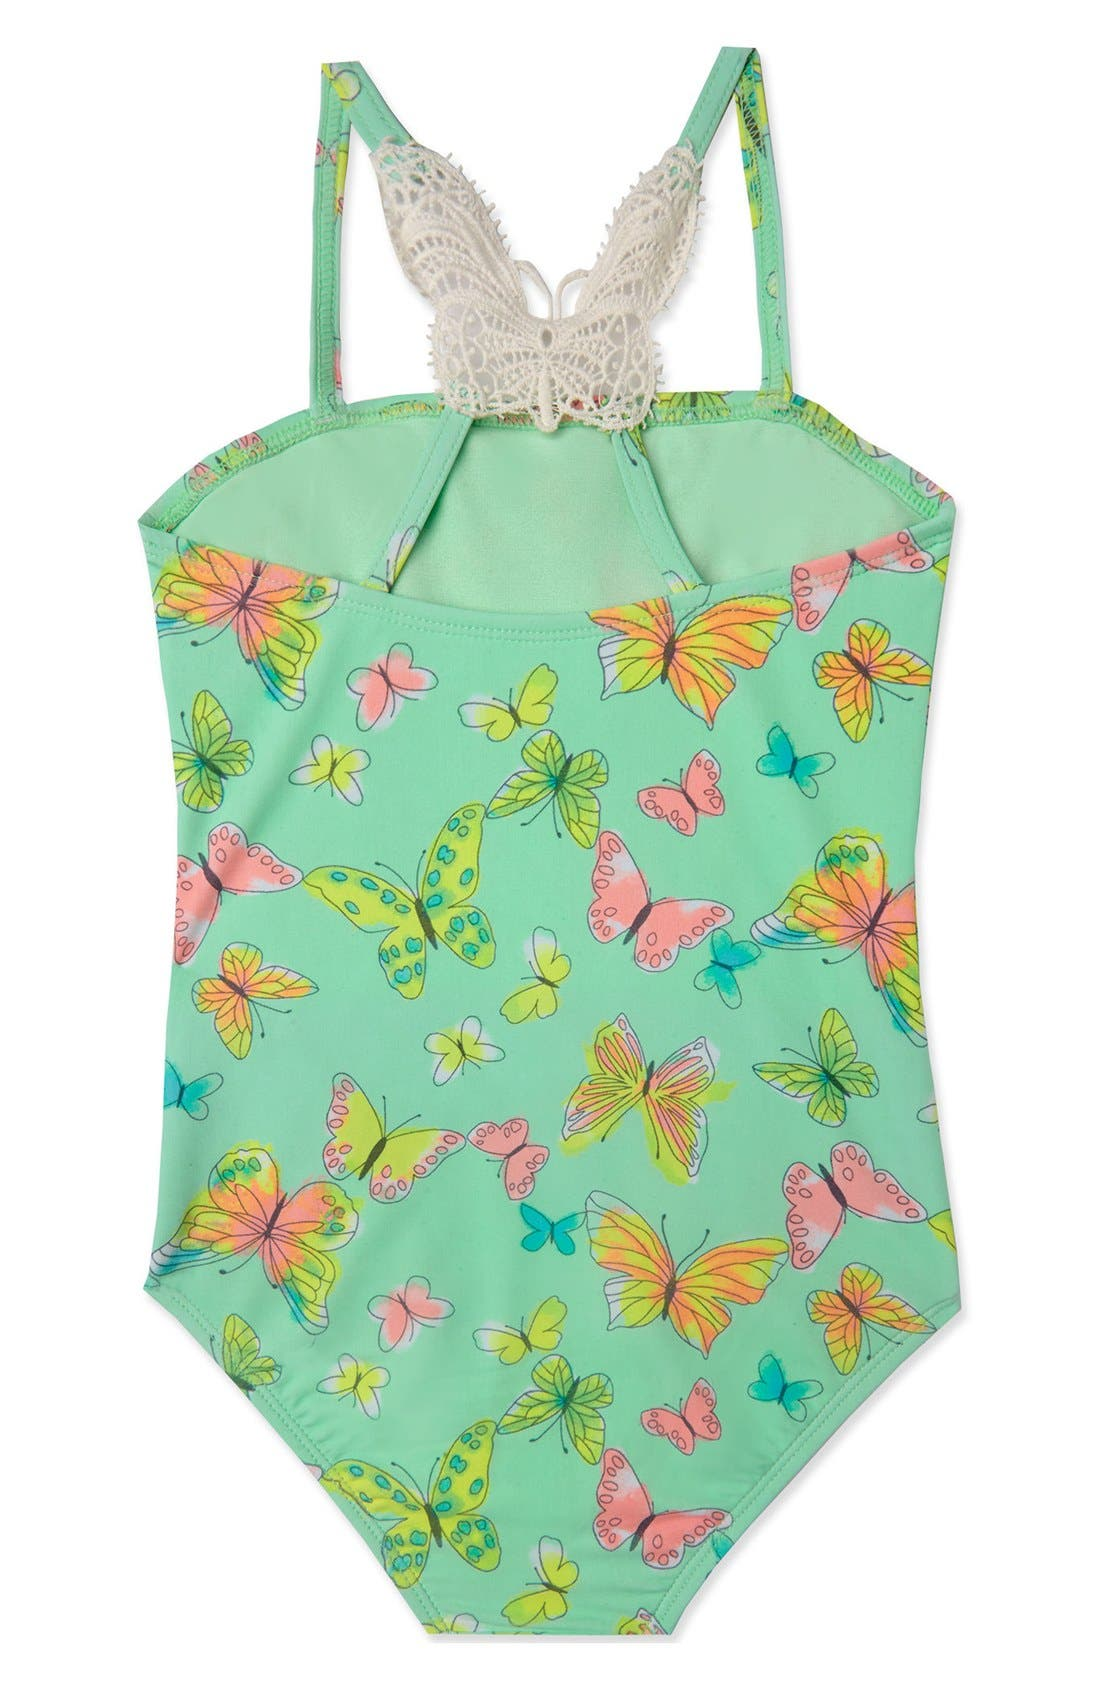 'Dreamy Butterfly' One-Piece Swimsuit,                             Alternate thumbnail 2, color,                             332